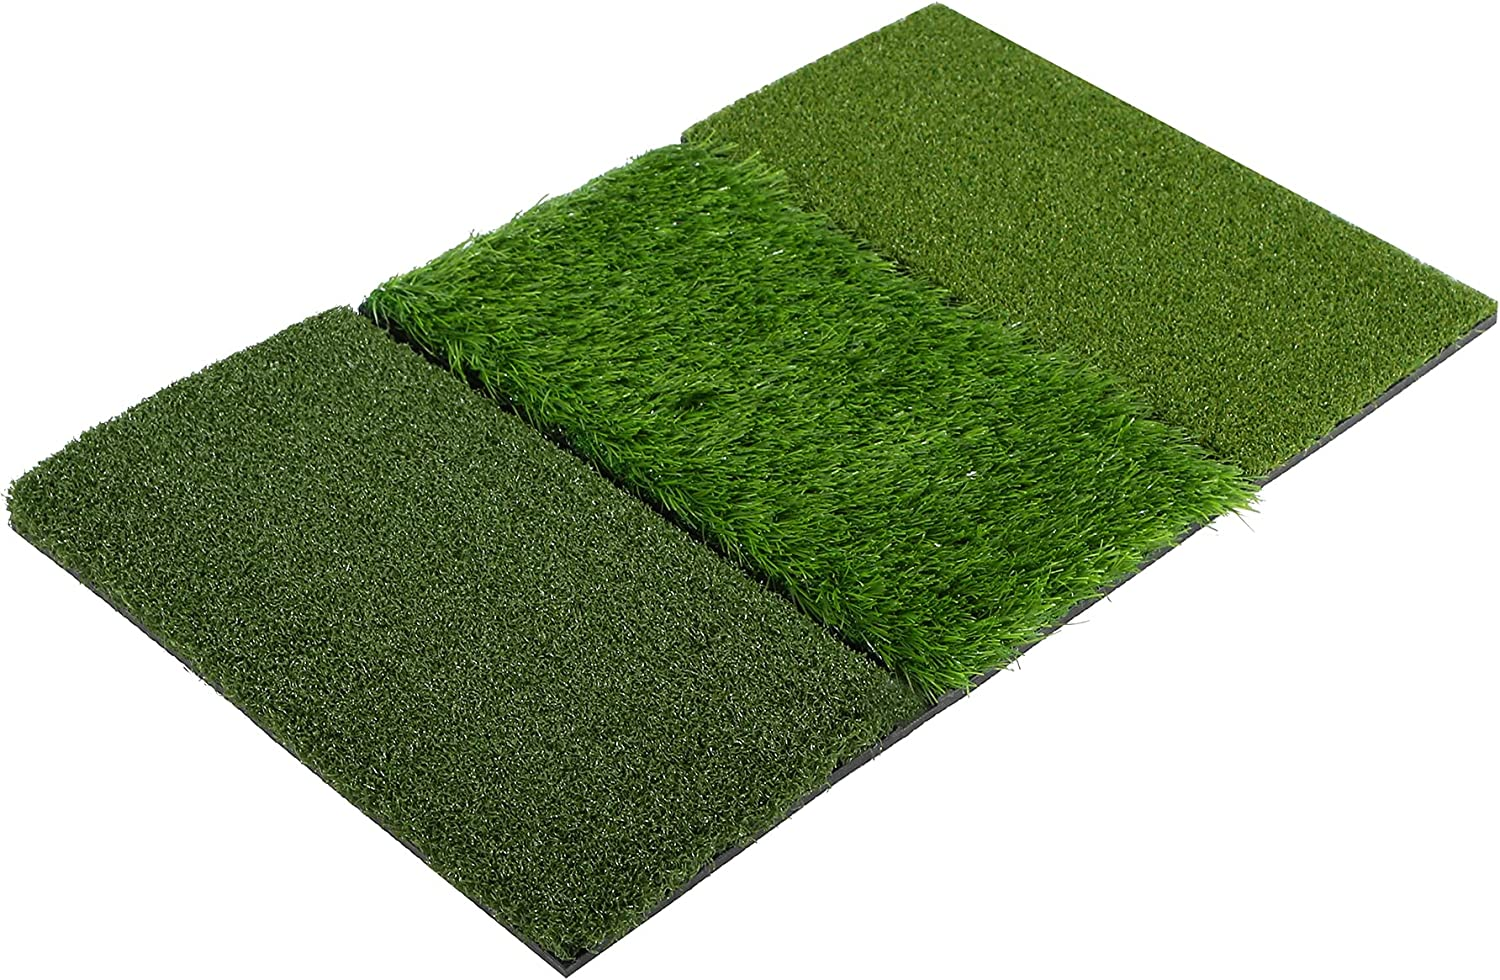 Lineslife Golf Hitting Mat, Artificial Golf Turf Practice Mat for Driving, Chipping, Swing, Idea for Backyard, Indoor, Outdoor, Home Use